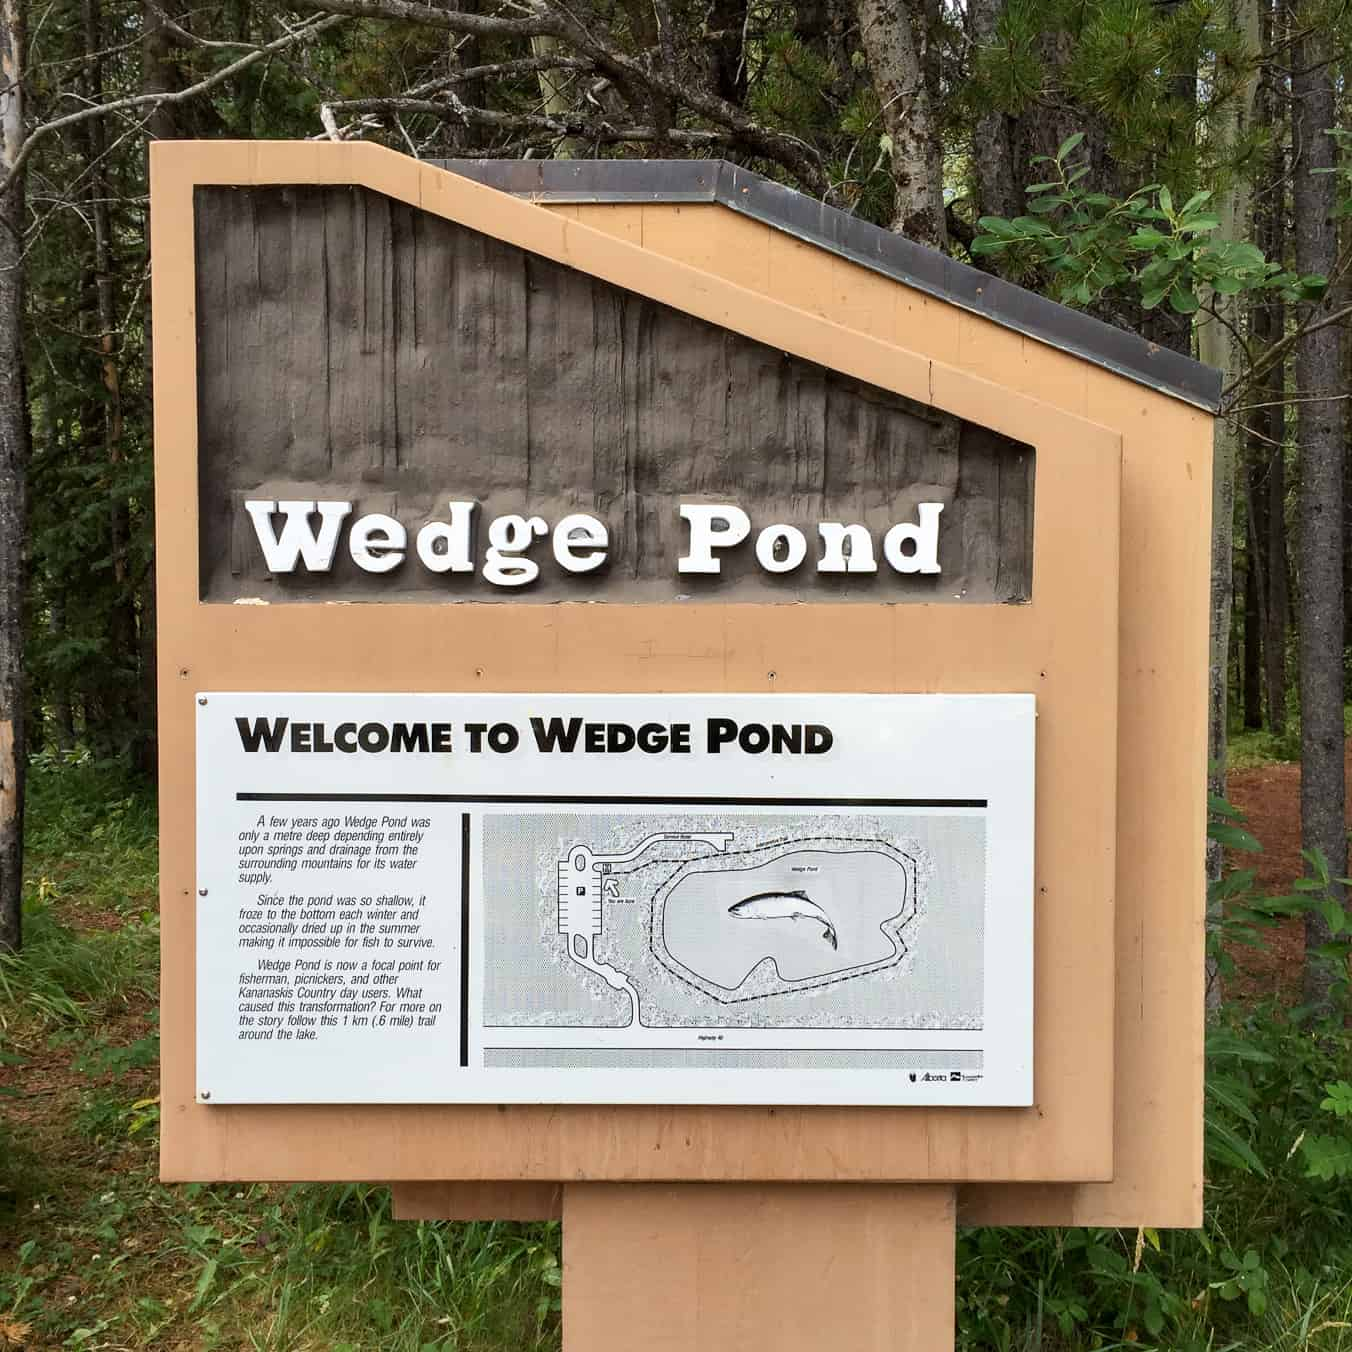 Wedge Pond